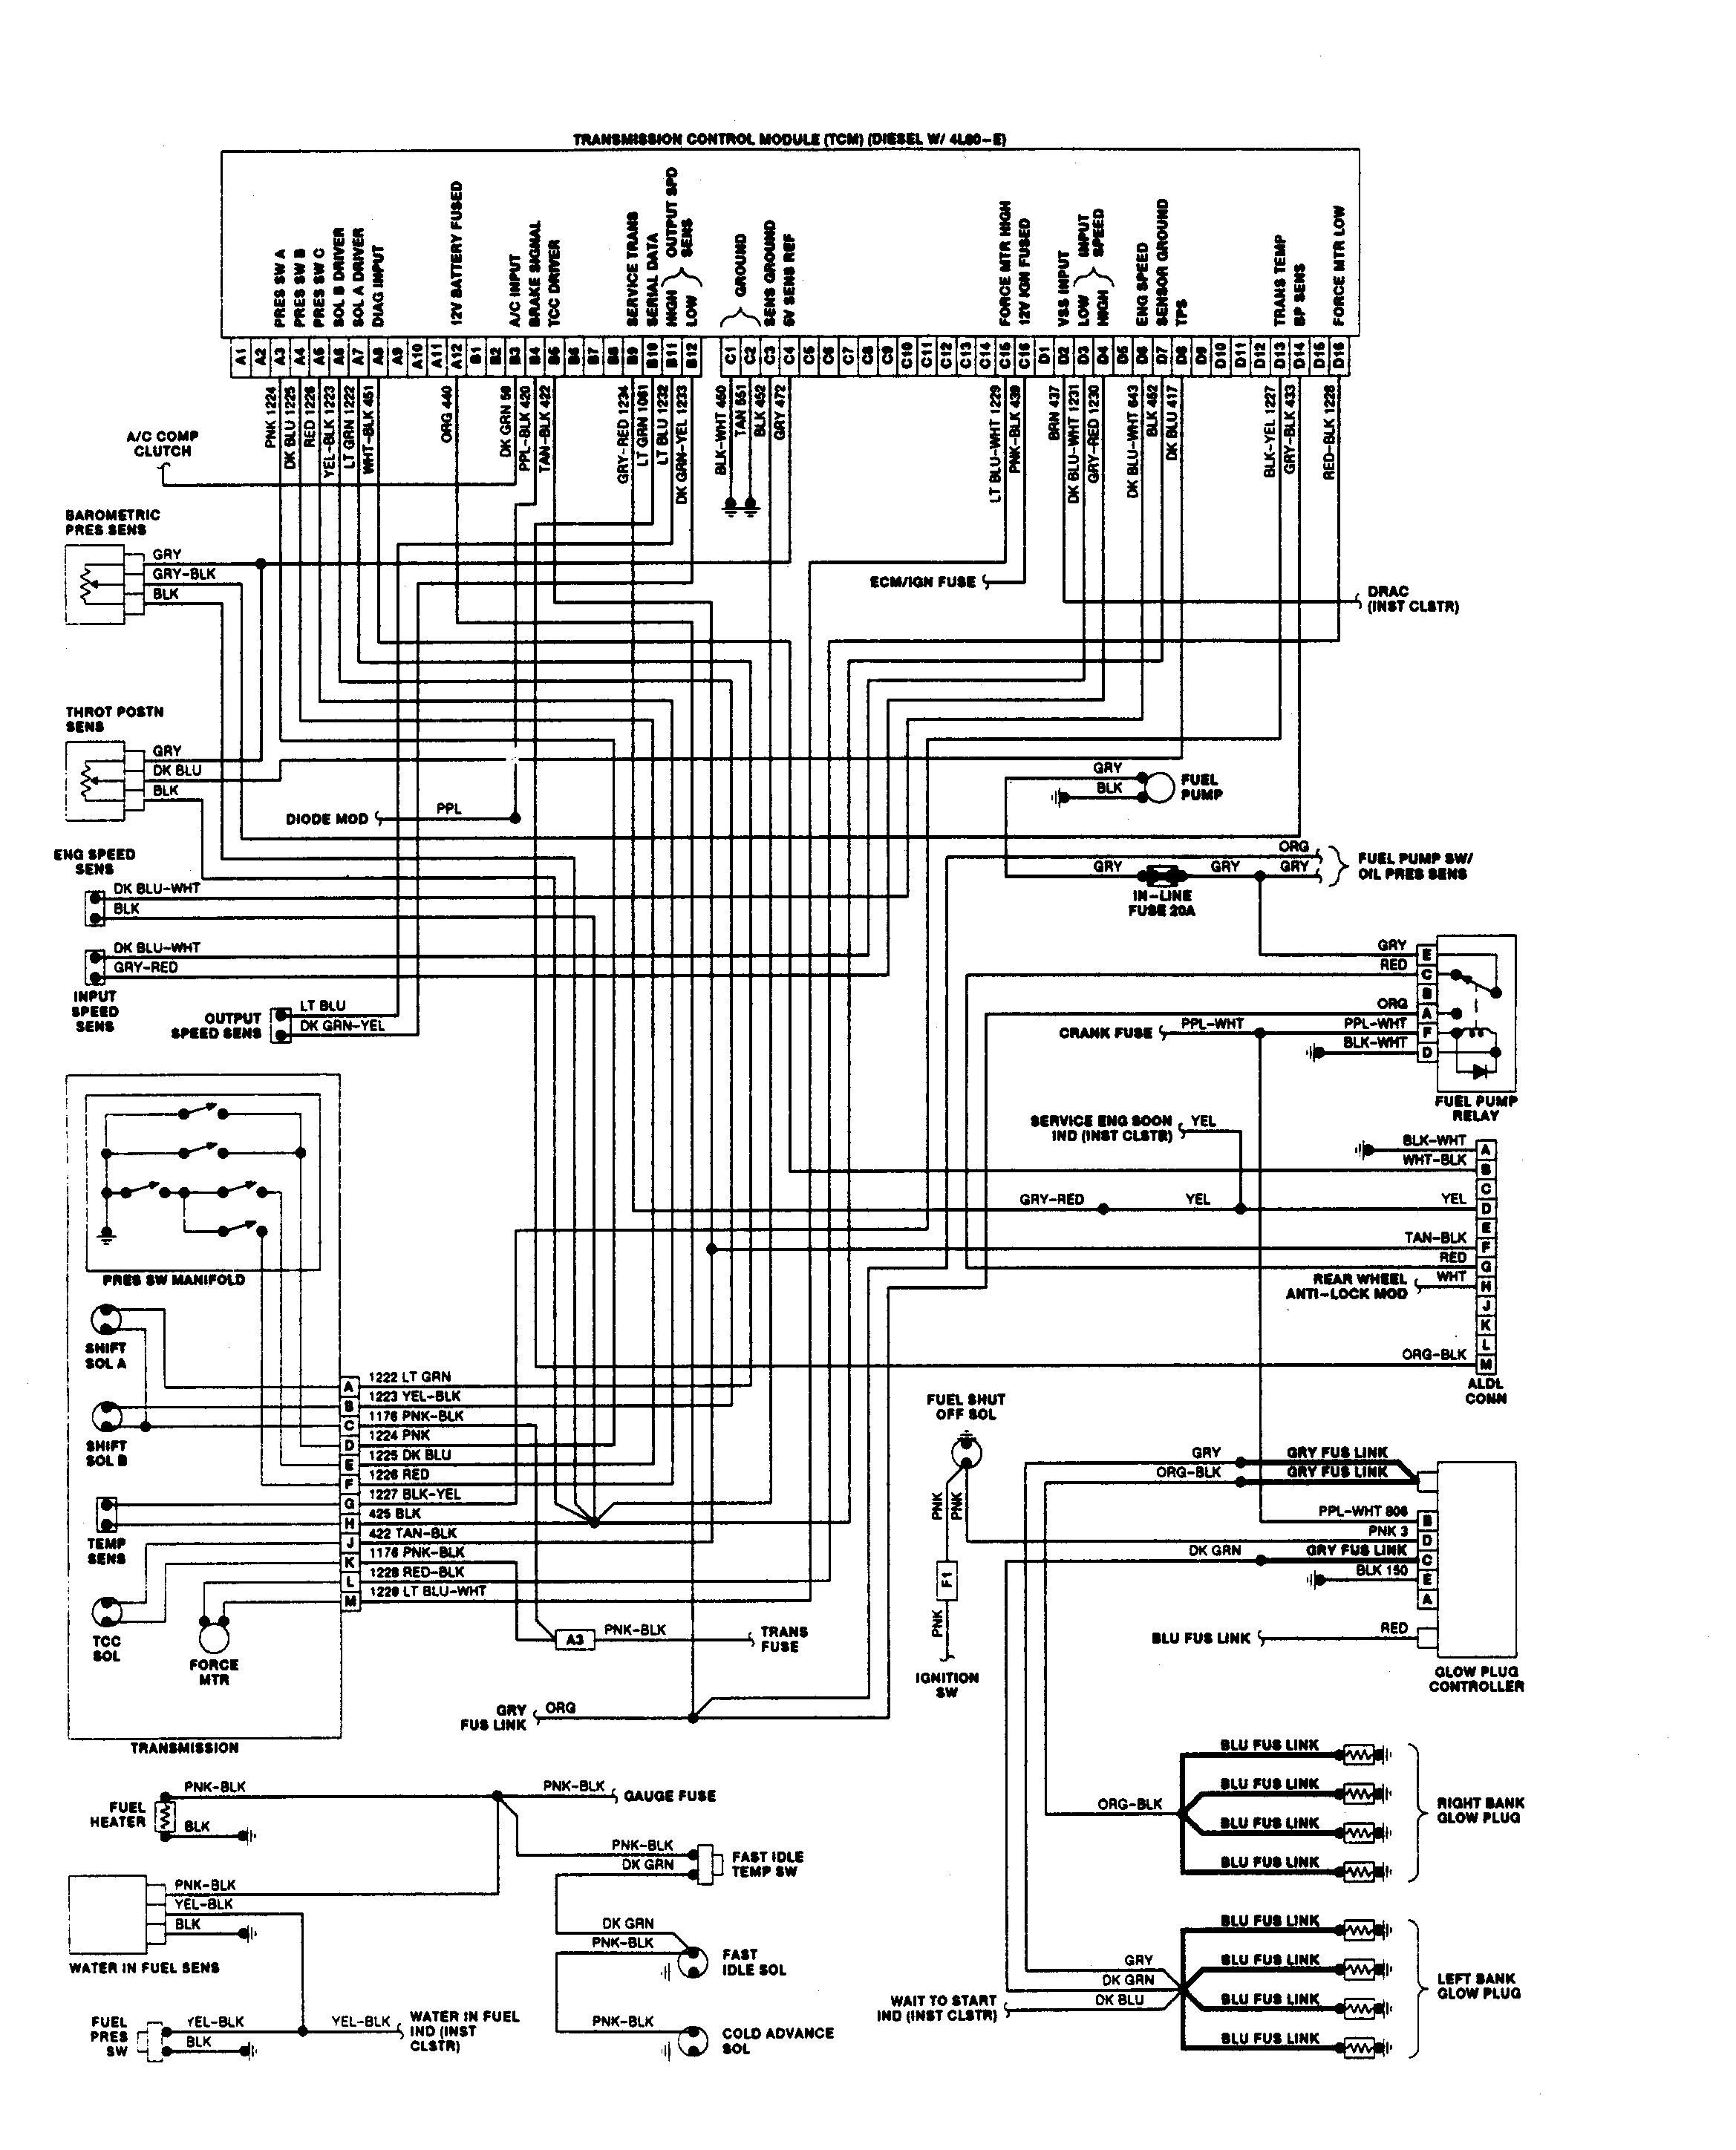 chevy p30 wiring diagram 1993 chevy p30 wiring diagram